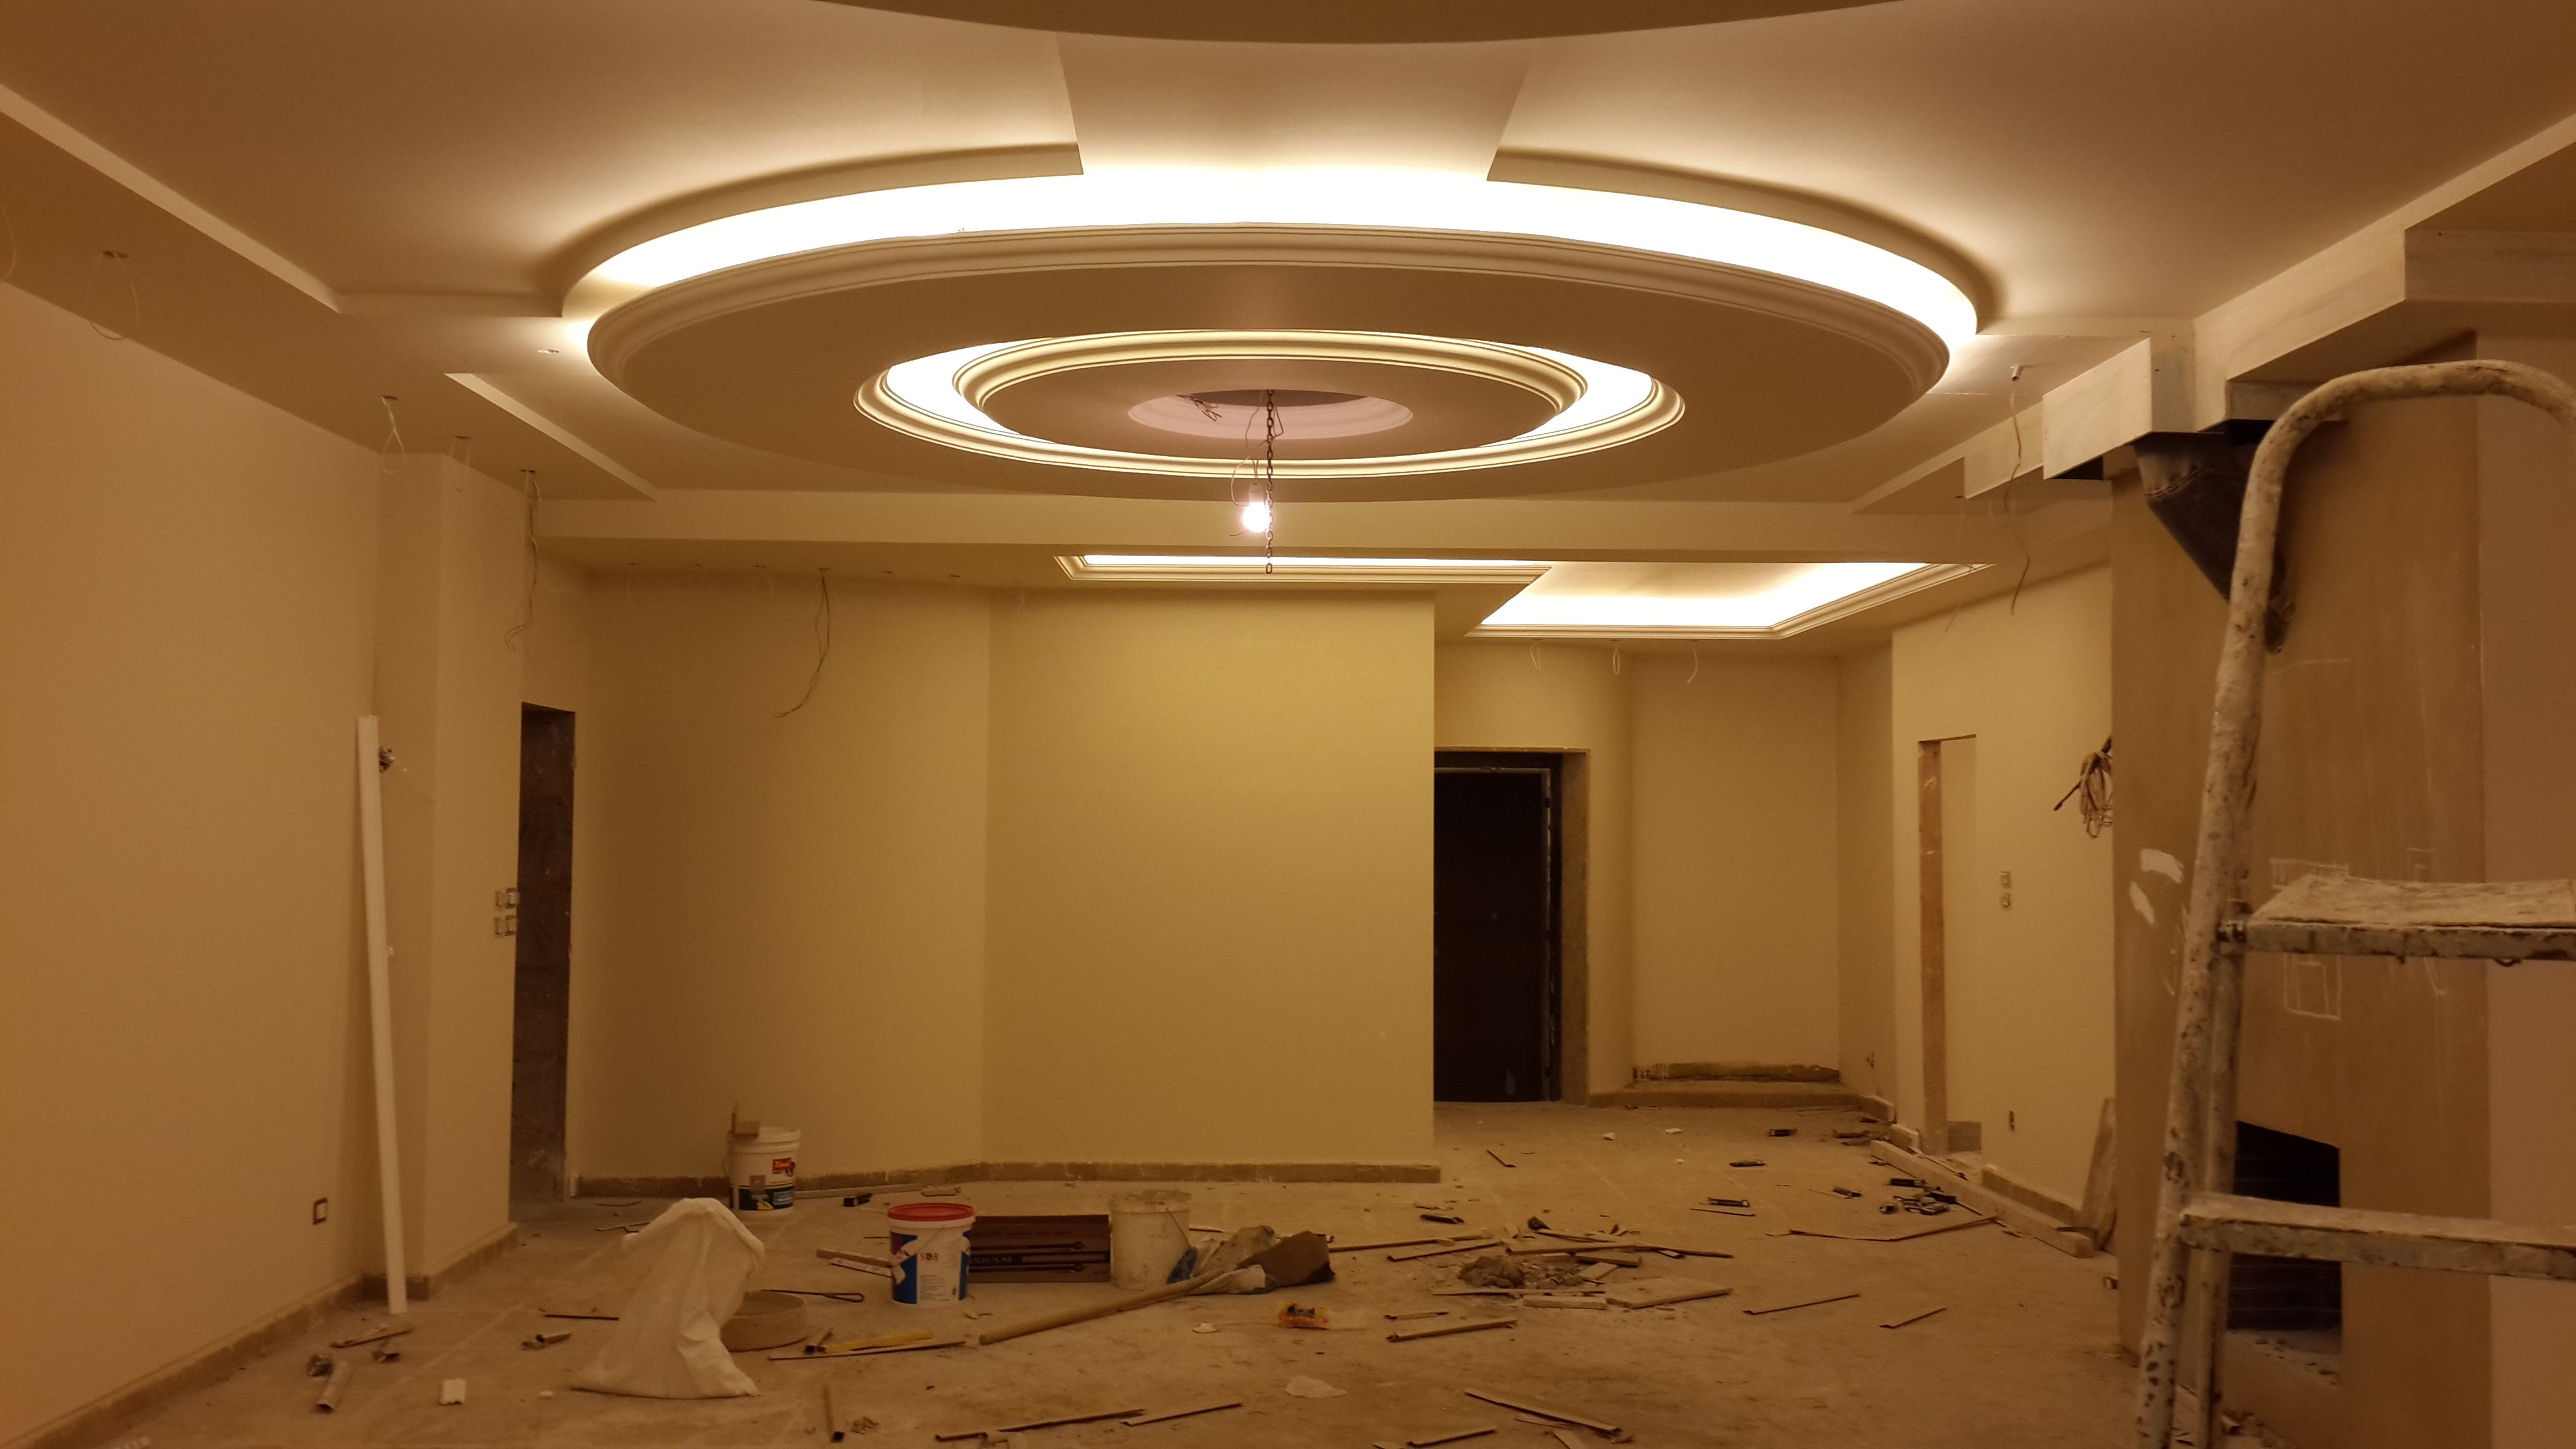 Pin by mus samsuddin on interior false ceiling design - Living room false ceiling designs ...